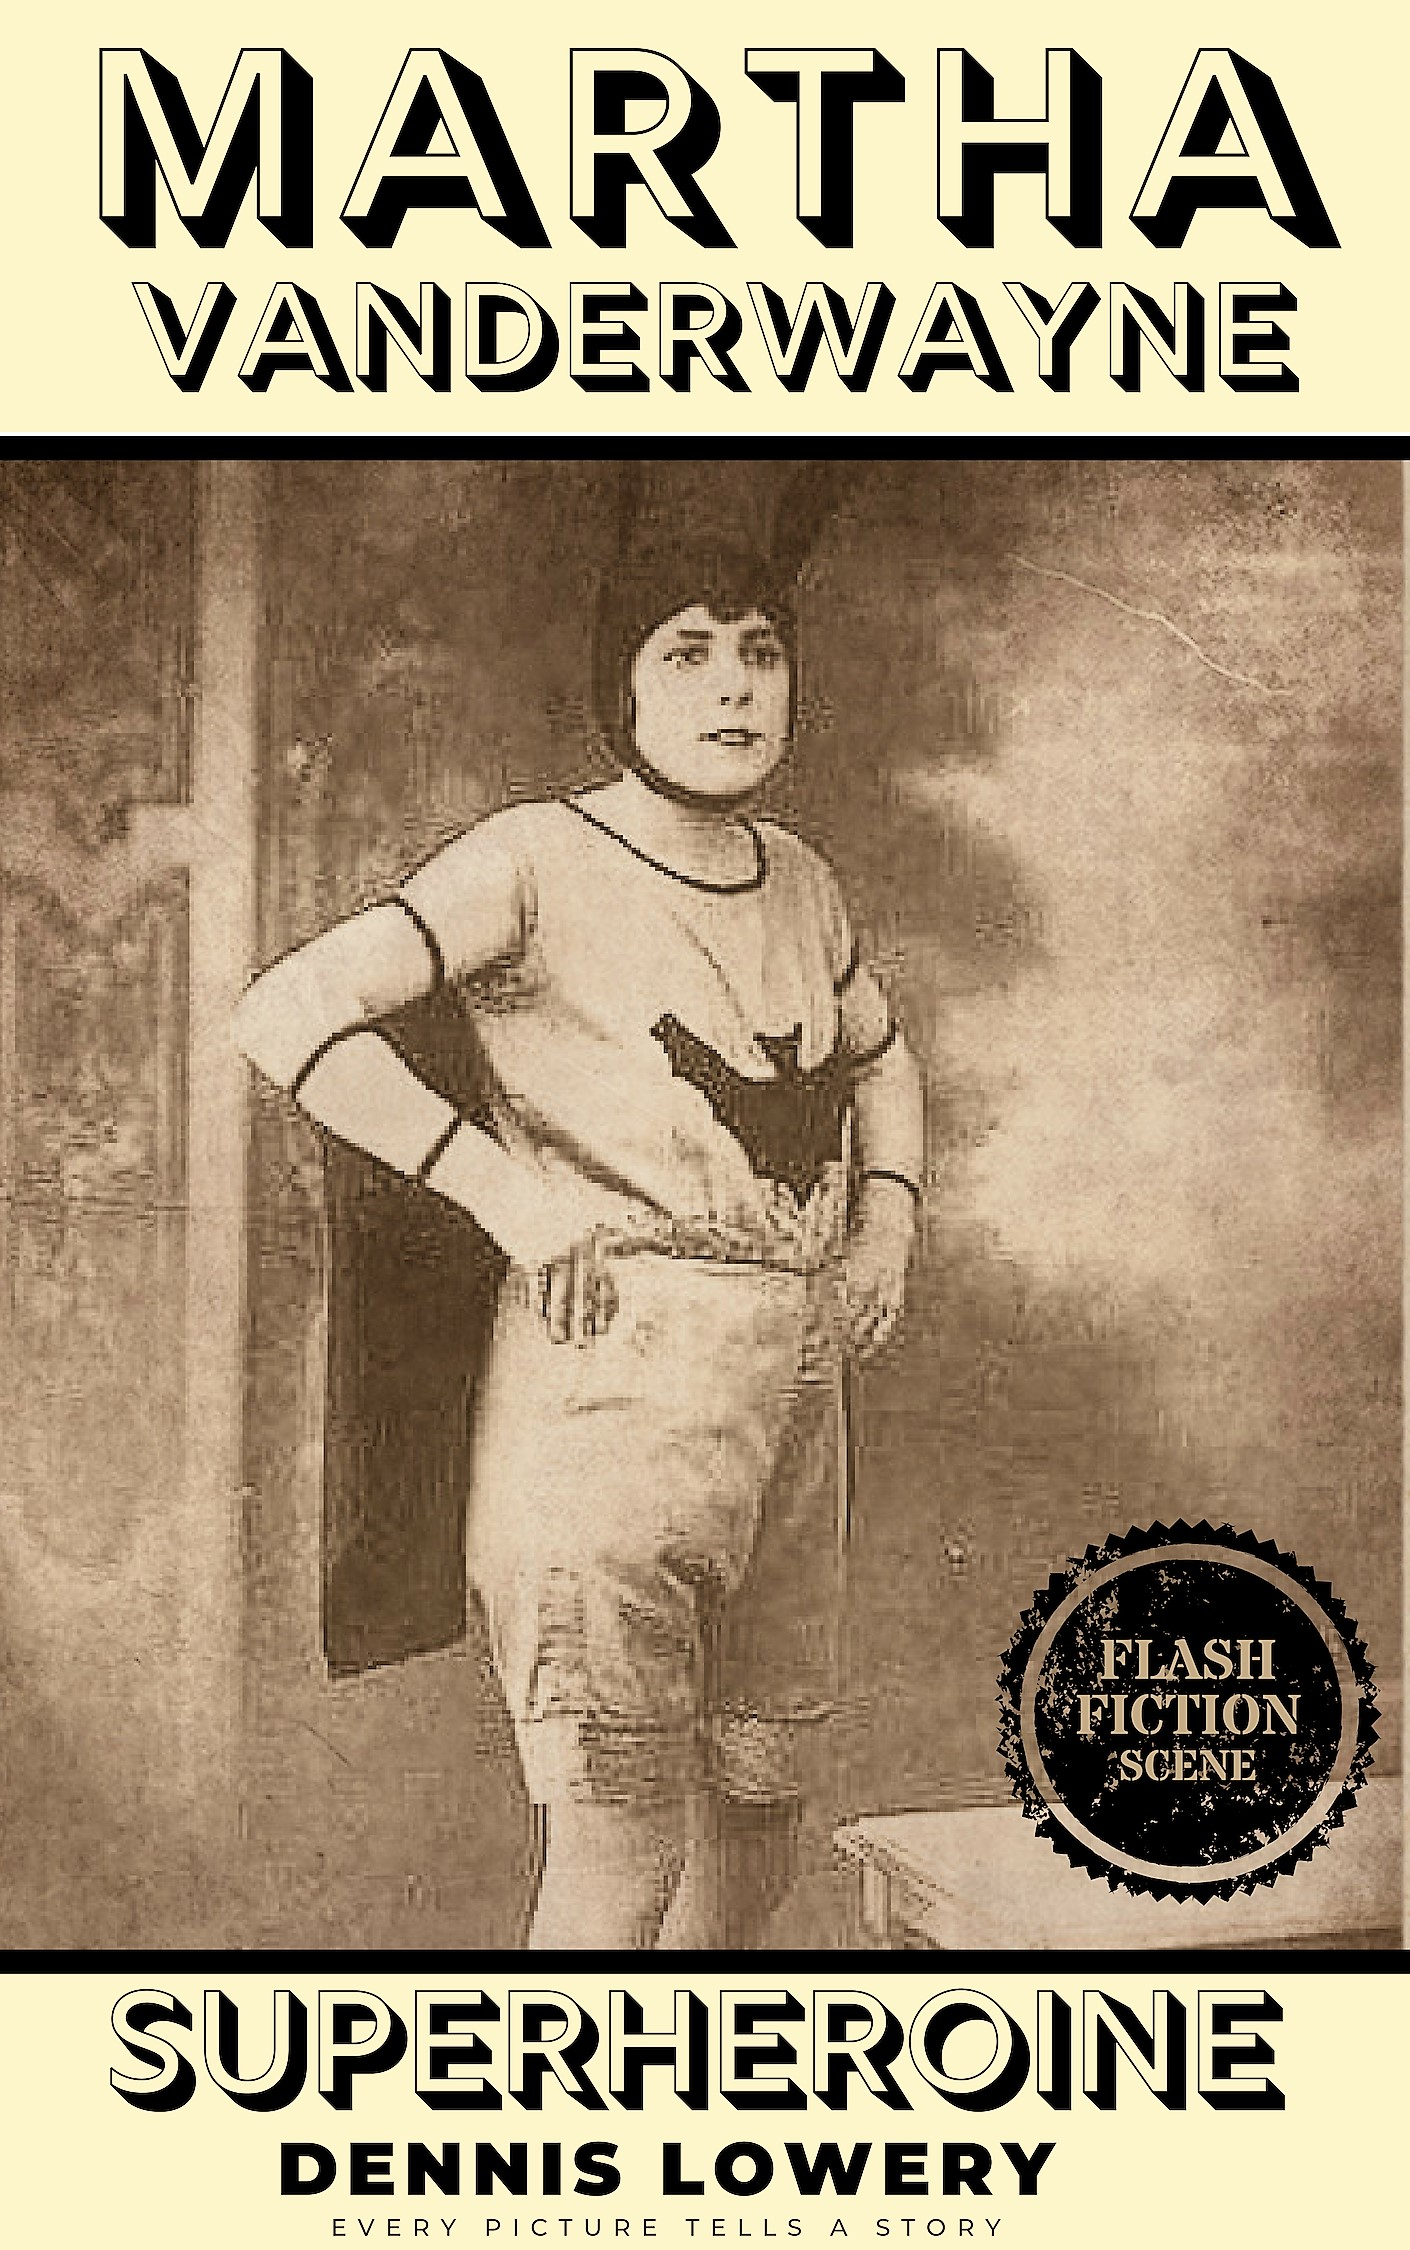 Martha Vanderwayne SUPERHEROINE - Flashfiction from Dennis Lowery